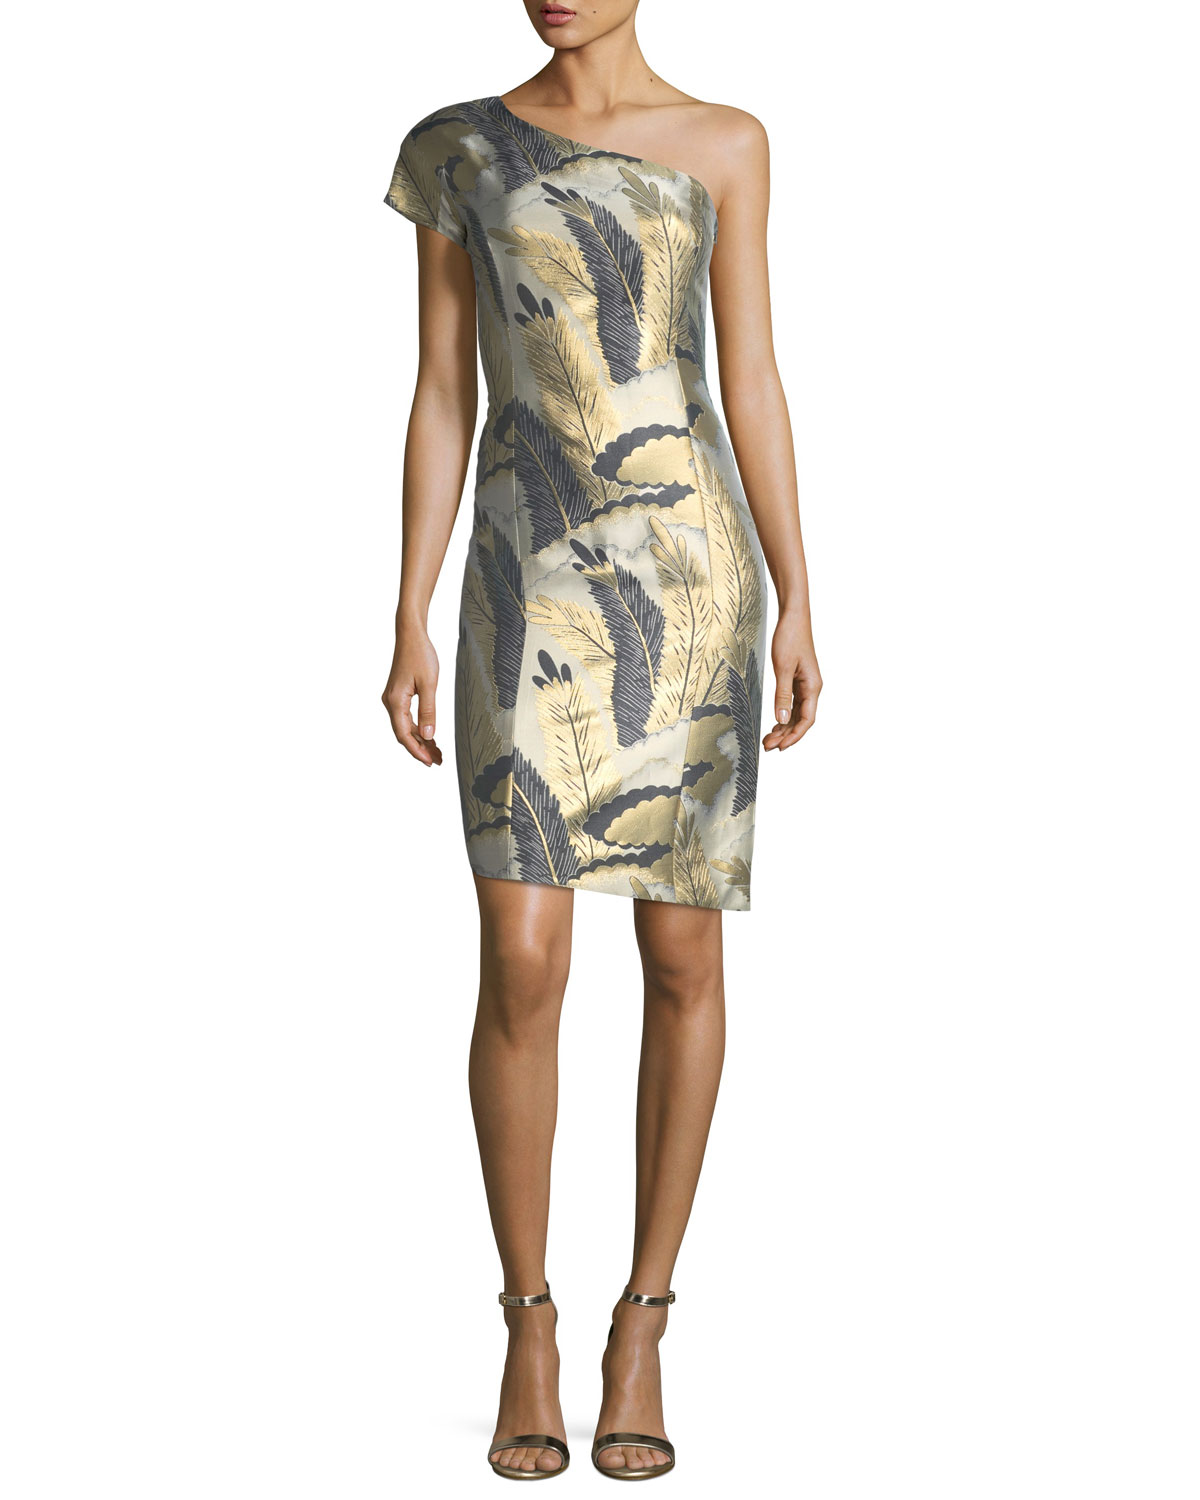 Cheap Sale Explore Outlet Inexpensive one-shoulder cocktail dress - Metallic Natori With Paypal Cheap Sale Footaction skJGYpJAA